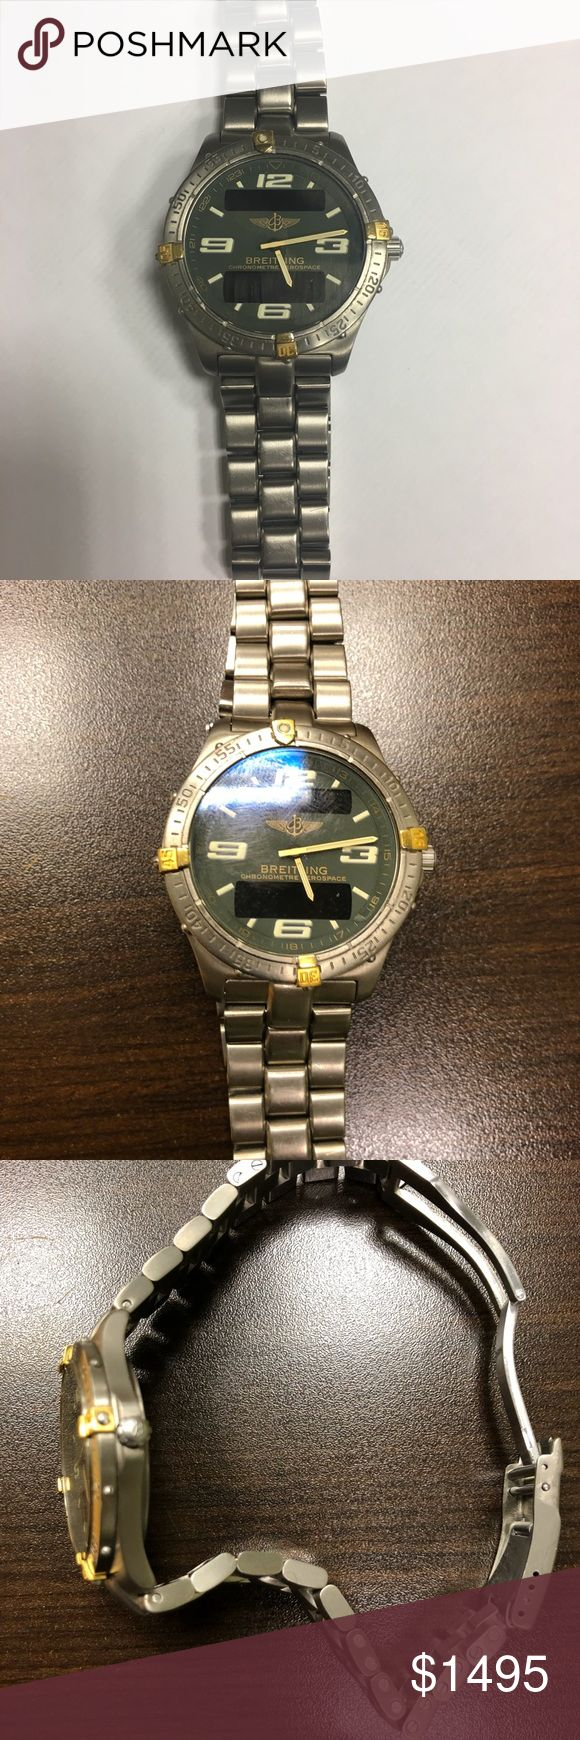 Breitling Aerospace Chronometre watch Breitling men's watch- excellent condition. All original packaging included - certificate of authenticity. Minor scuffs on band but clasp is fully functional- this is an heirloom piece! Breitling Accessories Watches